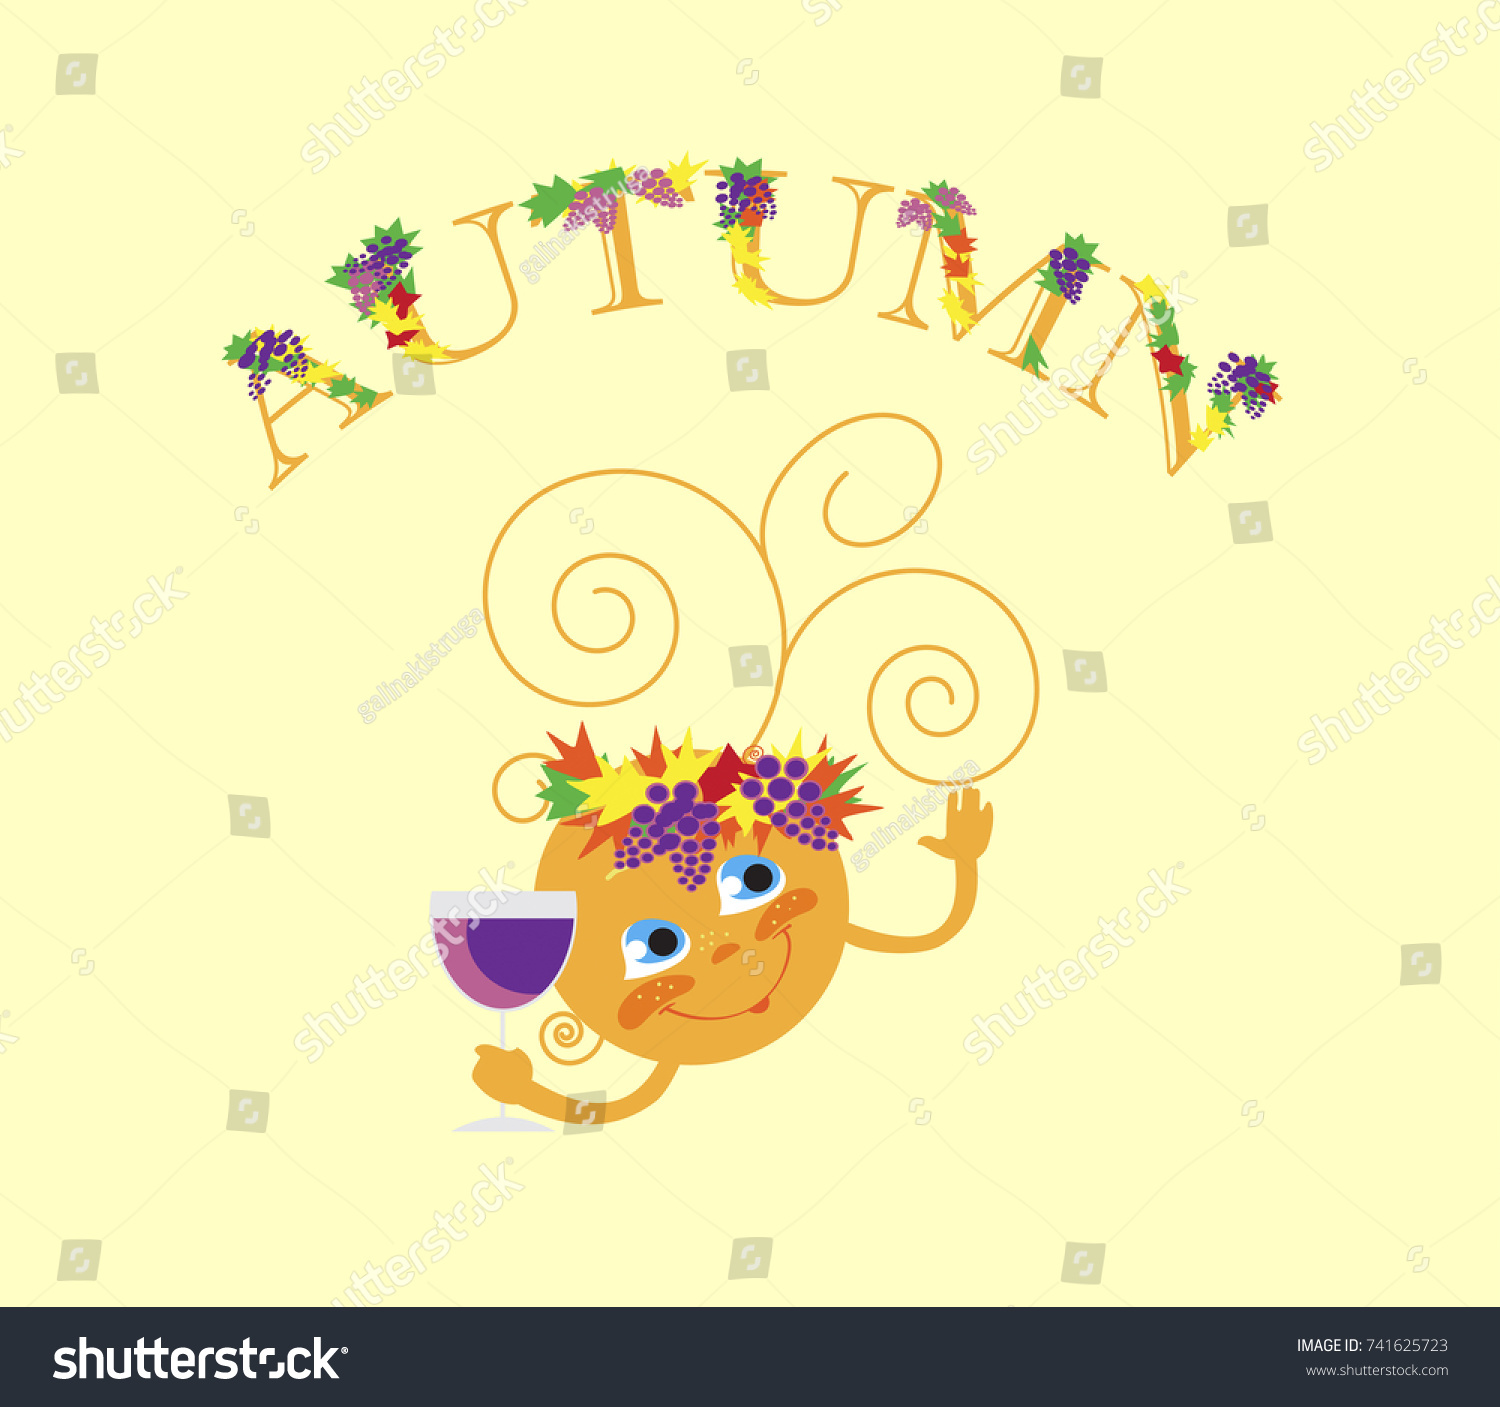 Animated Sun Glass Text Leaves Grapes Stock Vector 741625723 ... for Grapes Animated  66pct